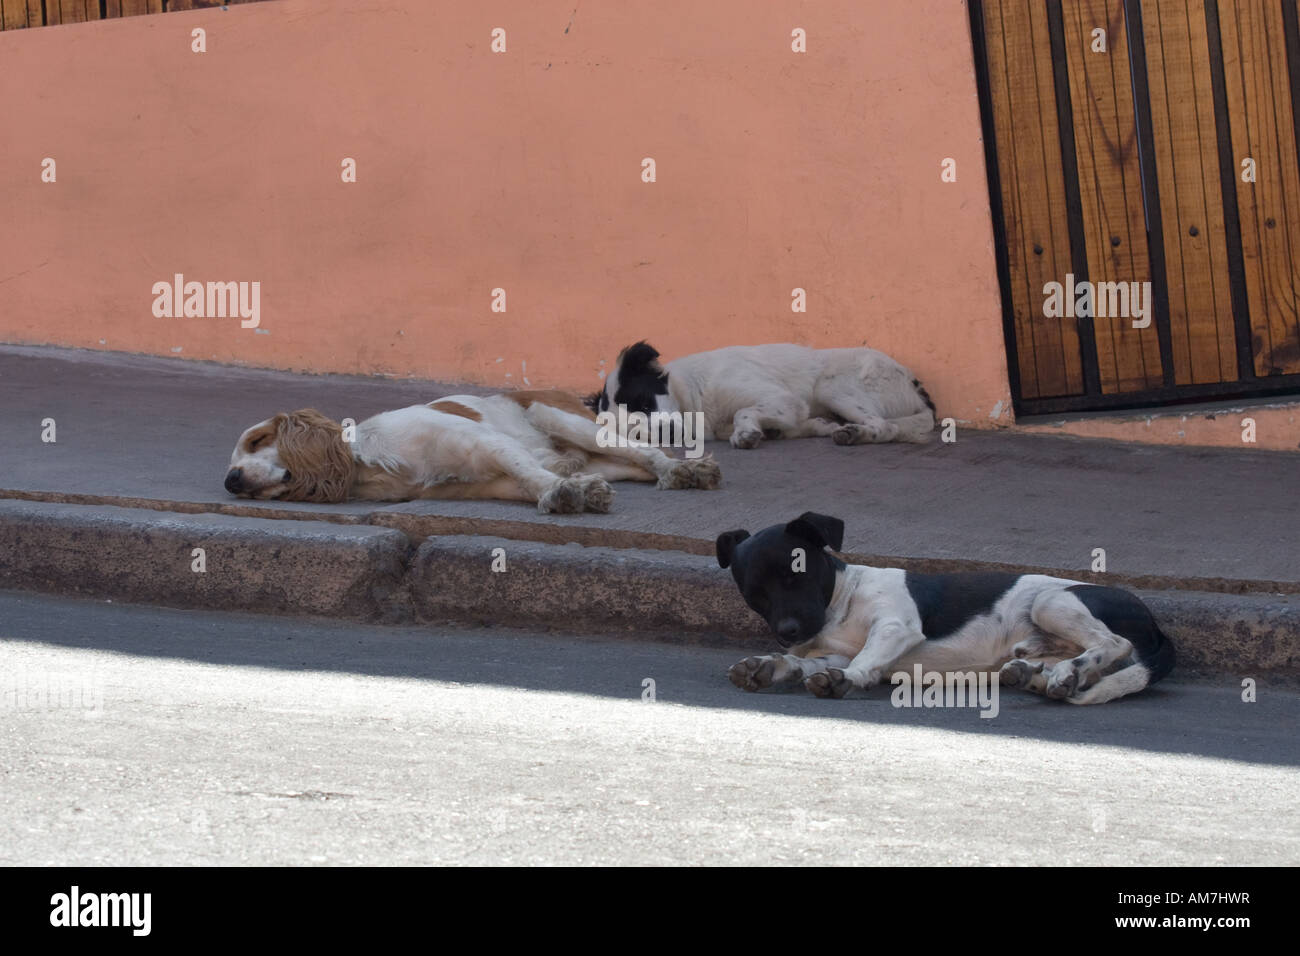 Sleeping dogs in Arica, Chile - Stock Image